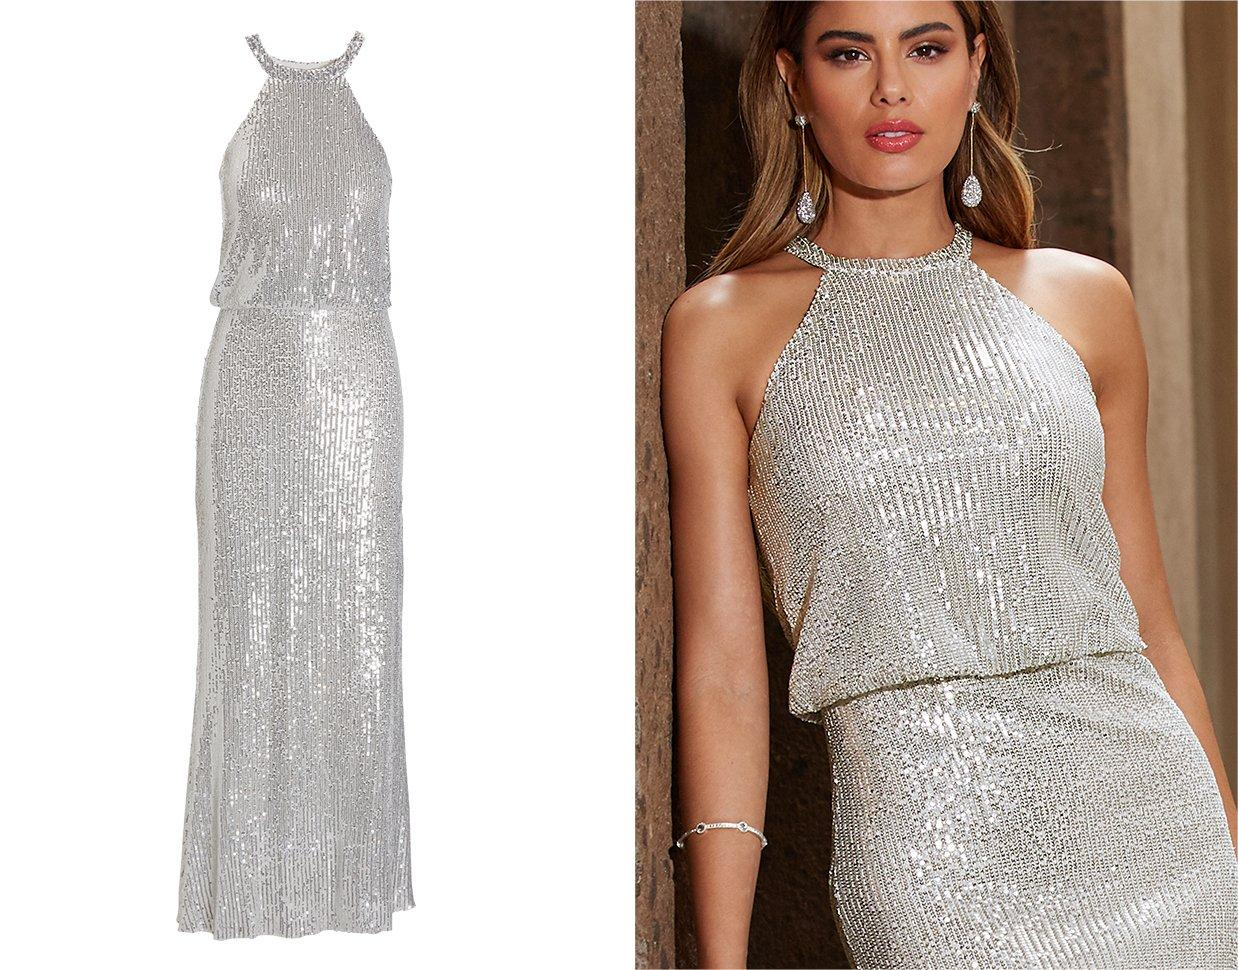 model wearing a silver sequin high-neck gown.